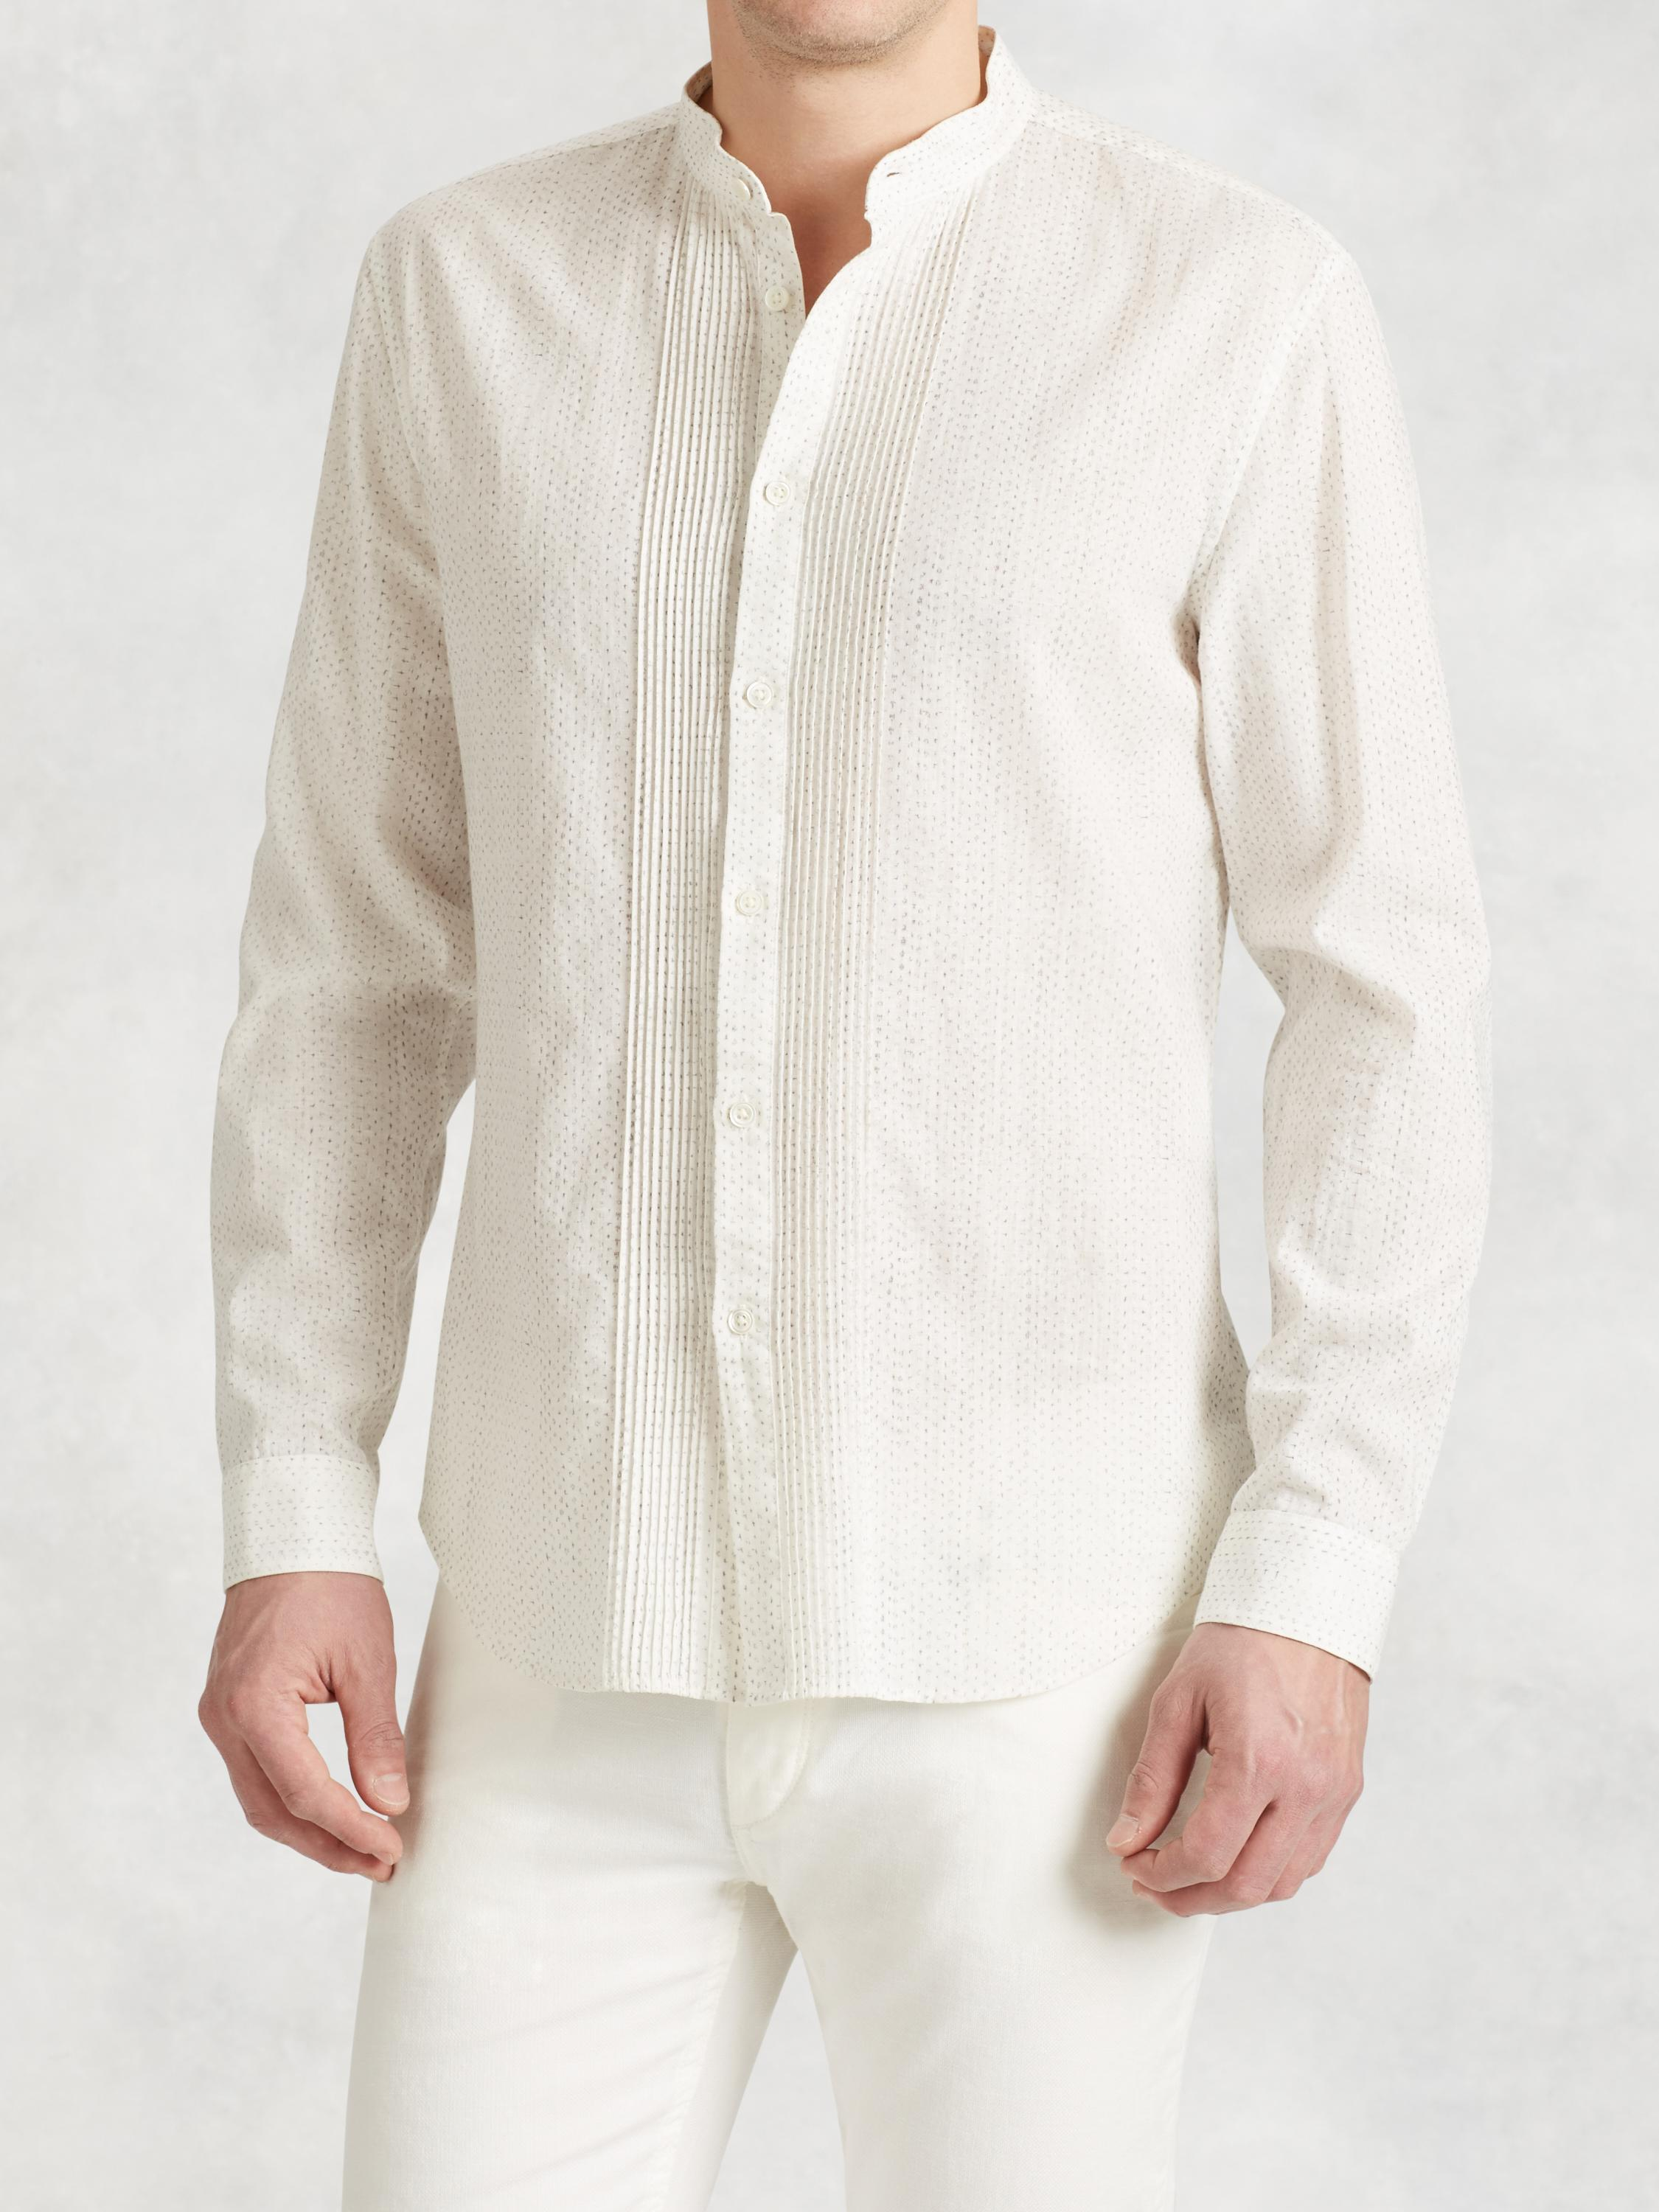 Linen Cotton Pin Tuck Shirt